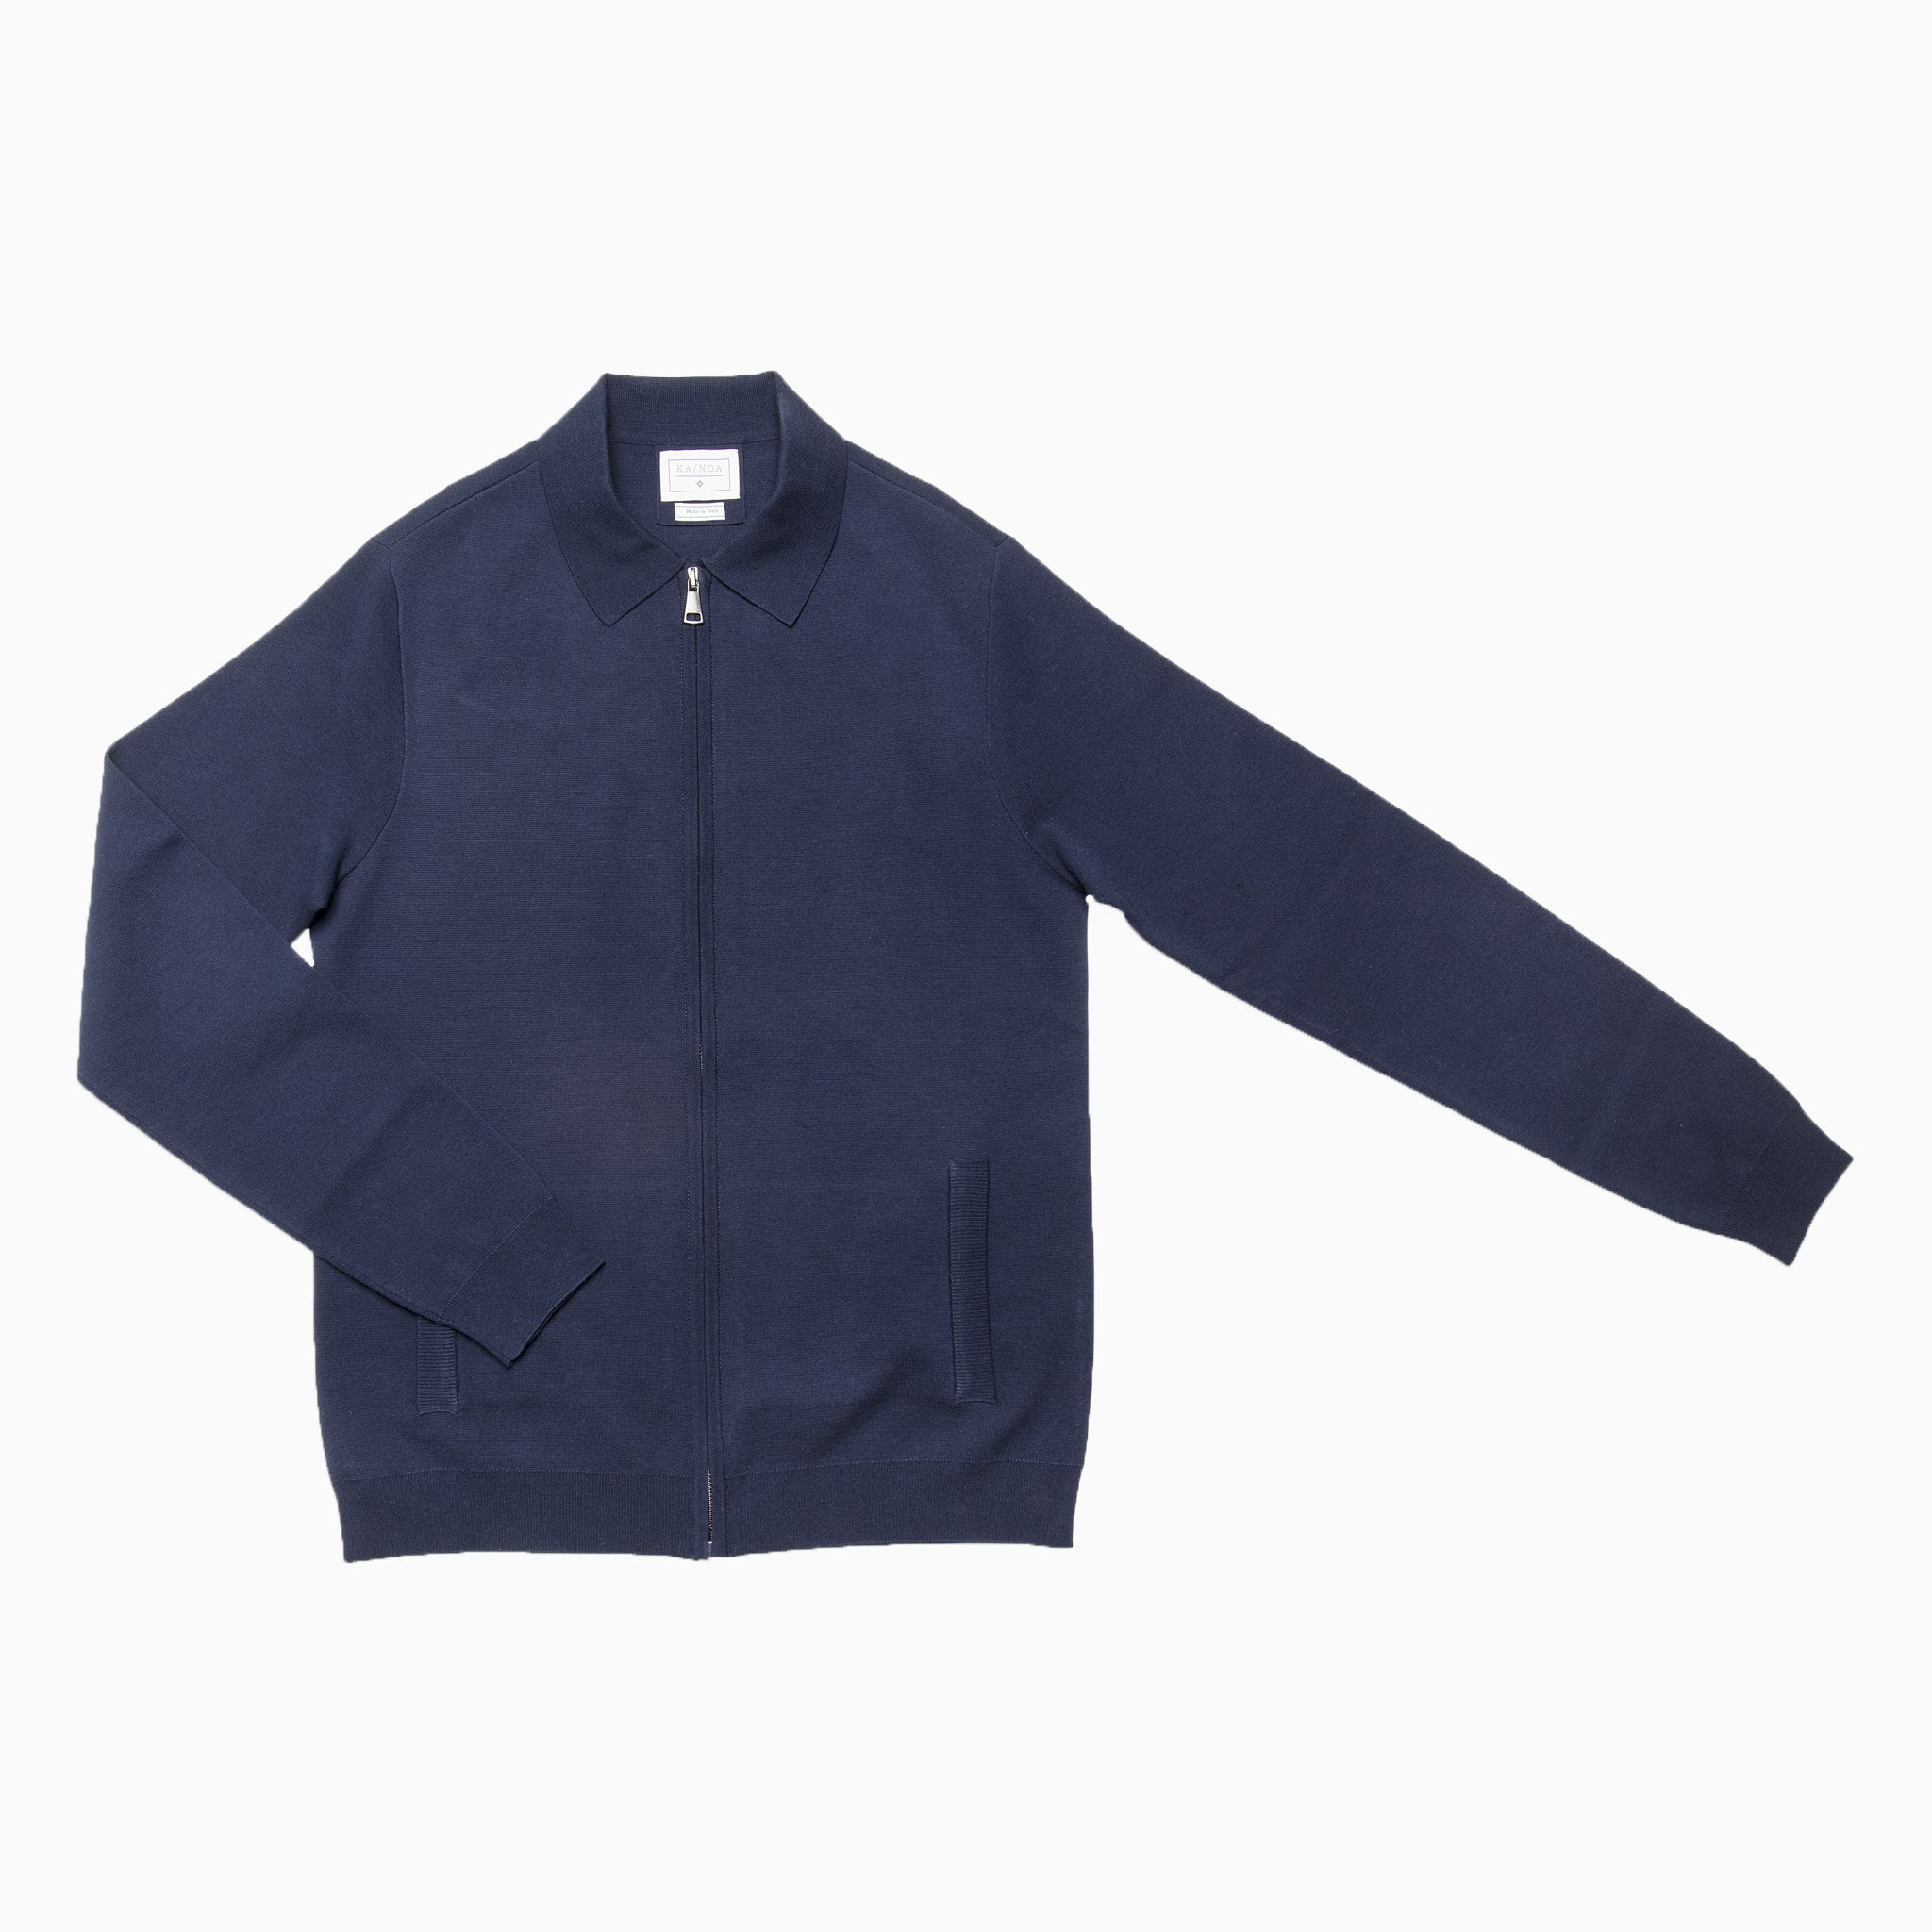 Francois knitted full-zip blouson in compact Egyptian cotton (dark blue)